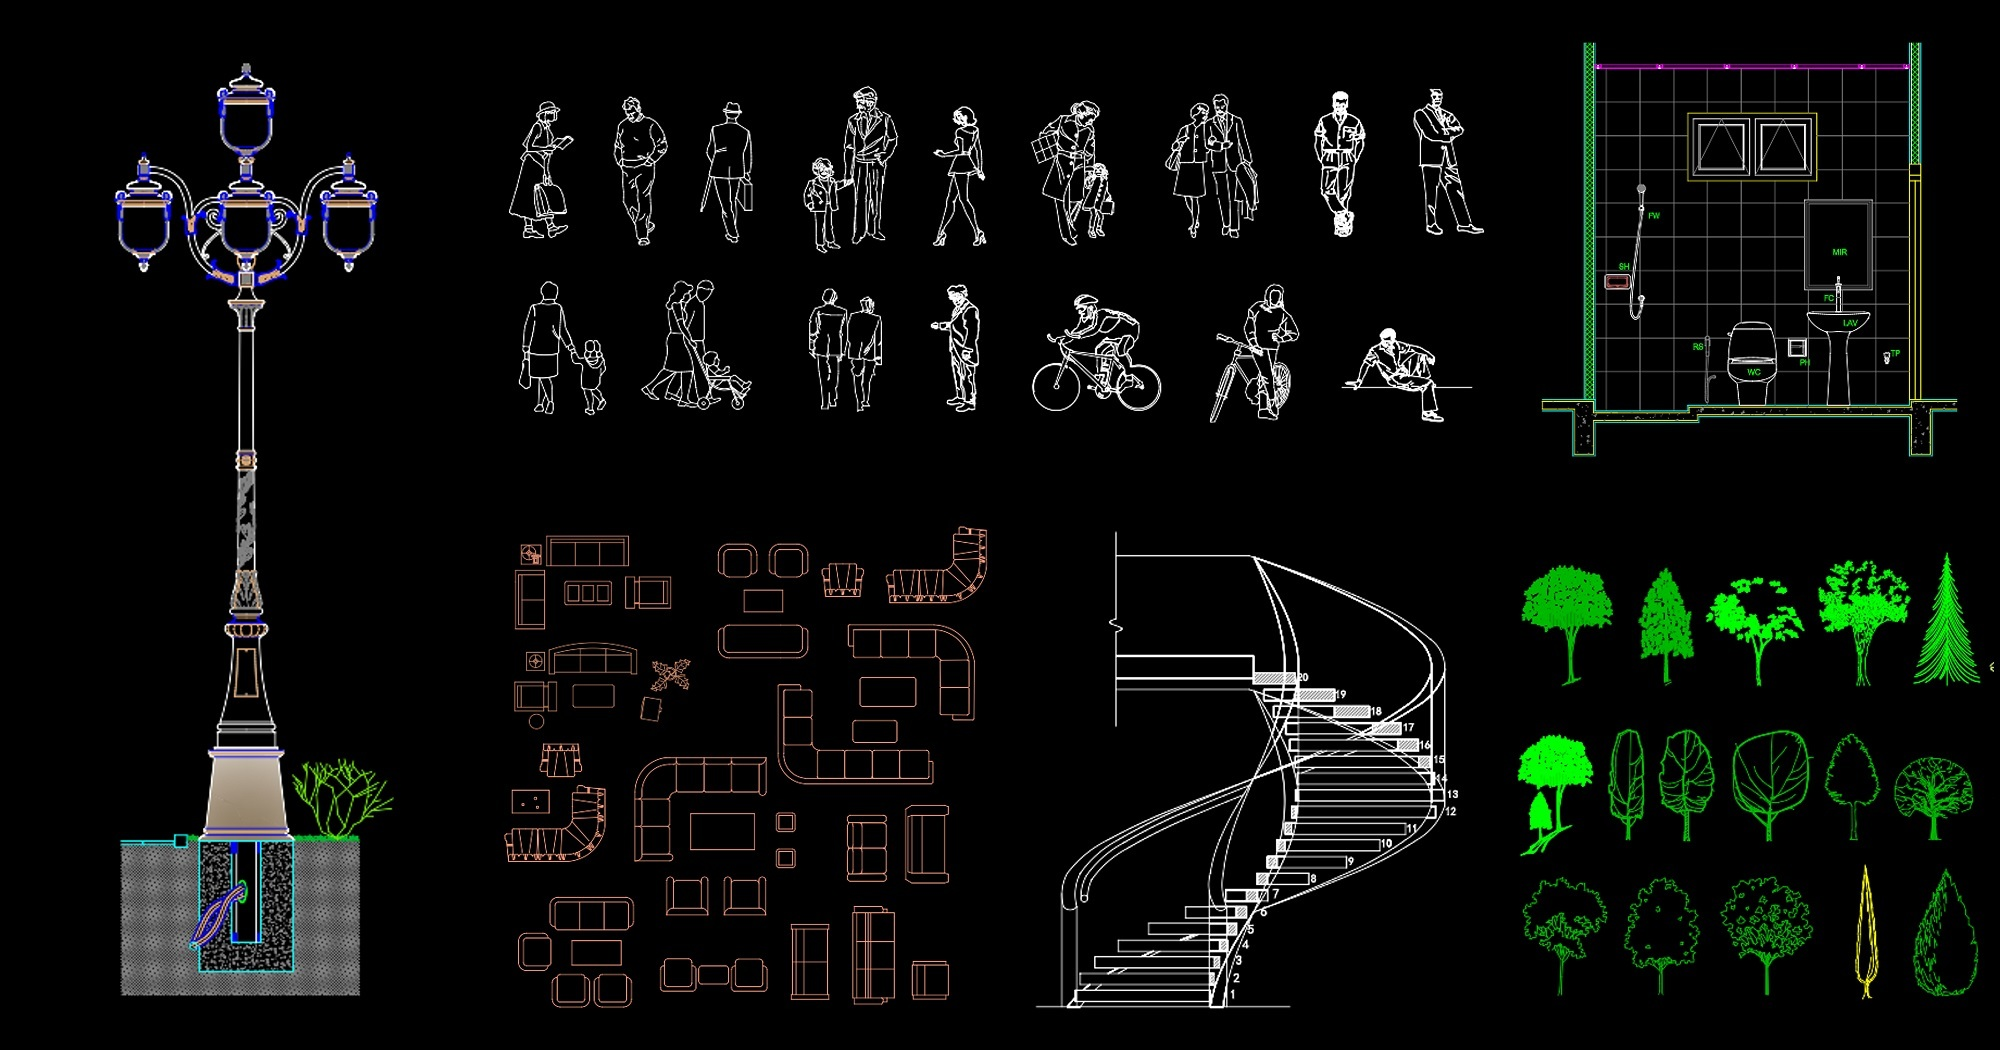 hight resolution of linecad offers solid collection of free architecture cad blocks no strings attached